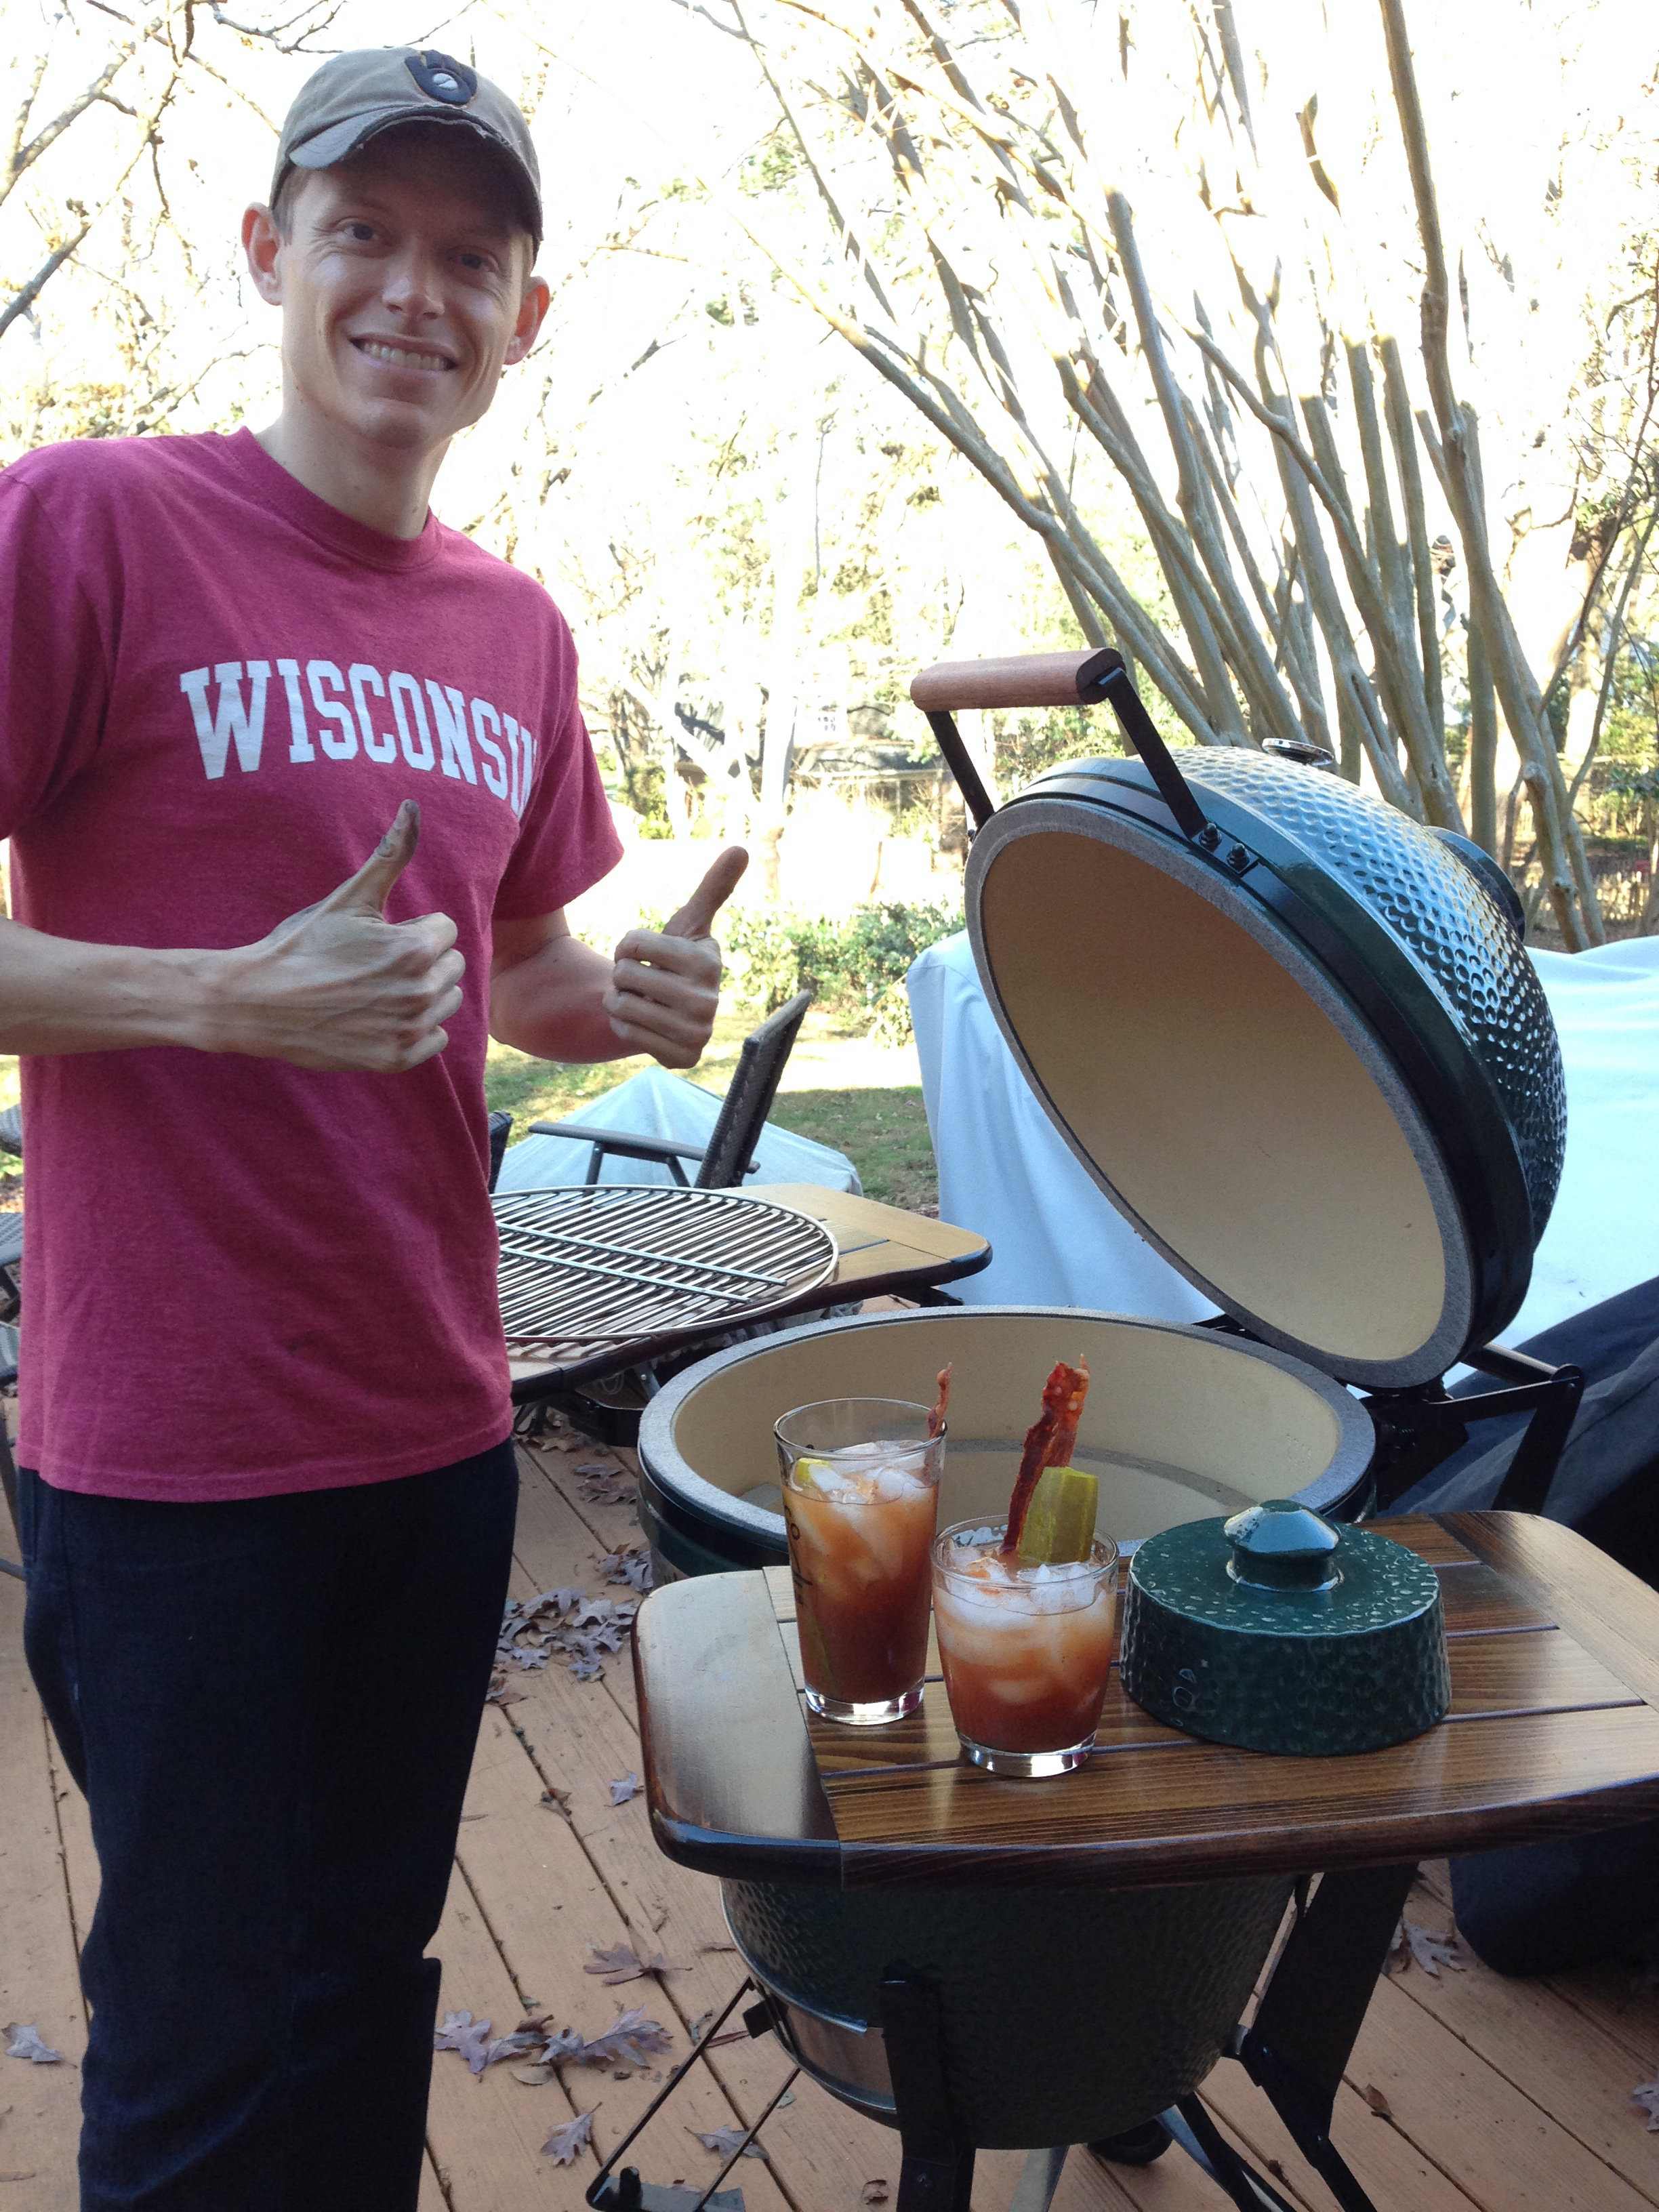 Big Green Egg and Bloody Mary - The perfect combination